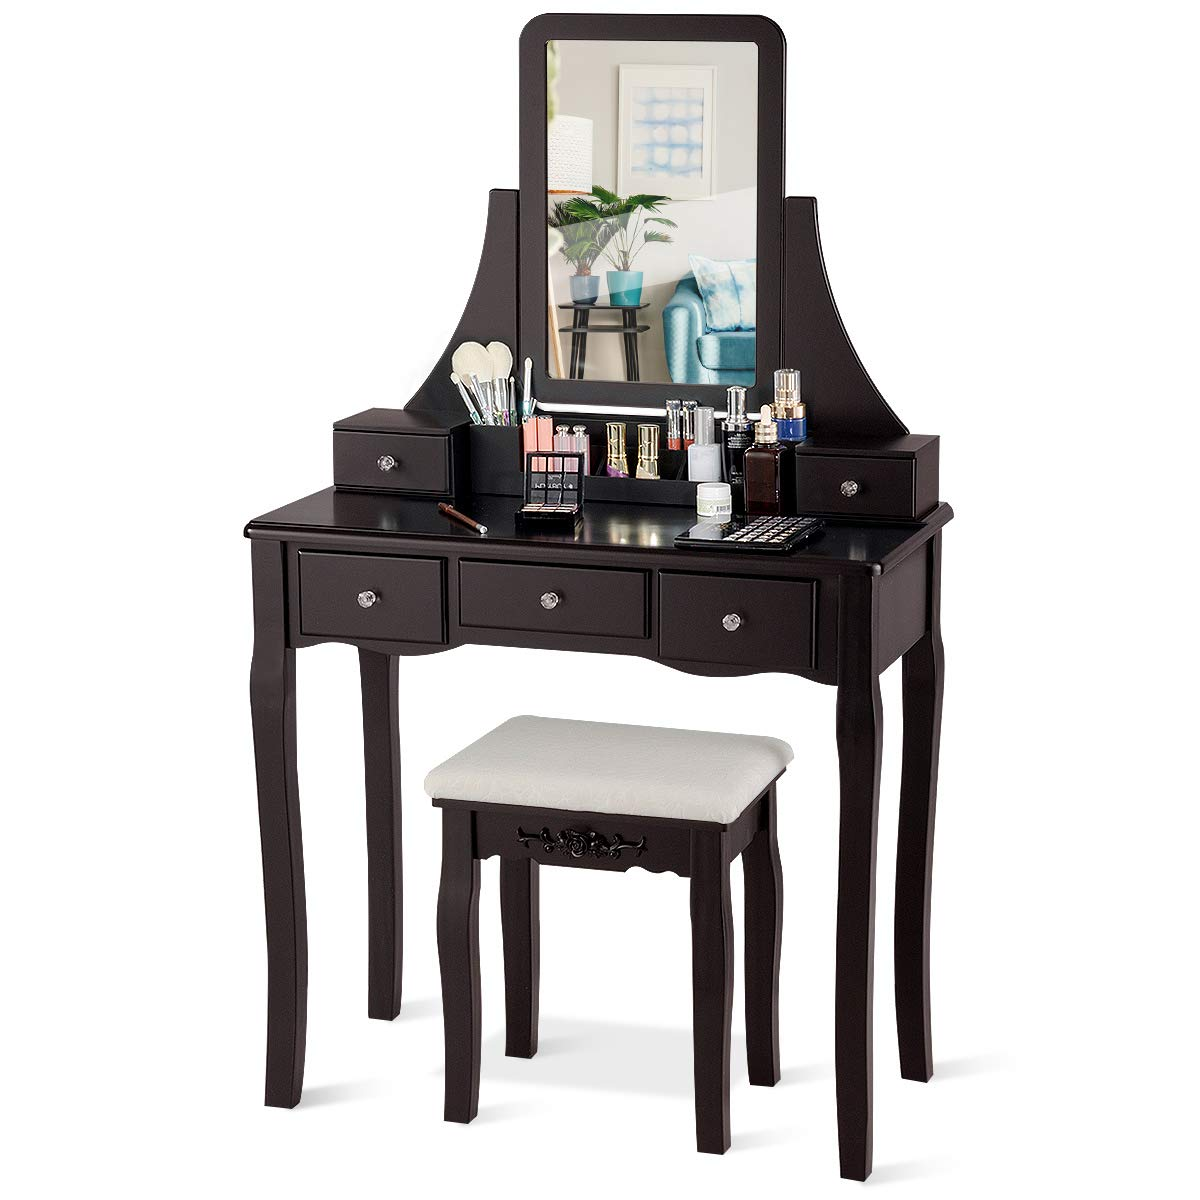 CHARMAID Vanity Set with 5 Drawers, 2 Dividers, Removable Storage Box, Dressing Table Set with Square Mirror Cushioned Stool for Women Girls, Bedroom Bathroom Furniture Makeup Vanity Set Coffee